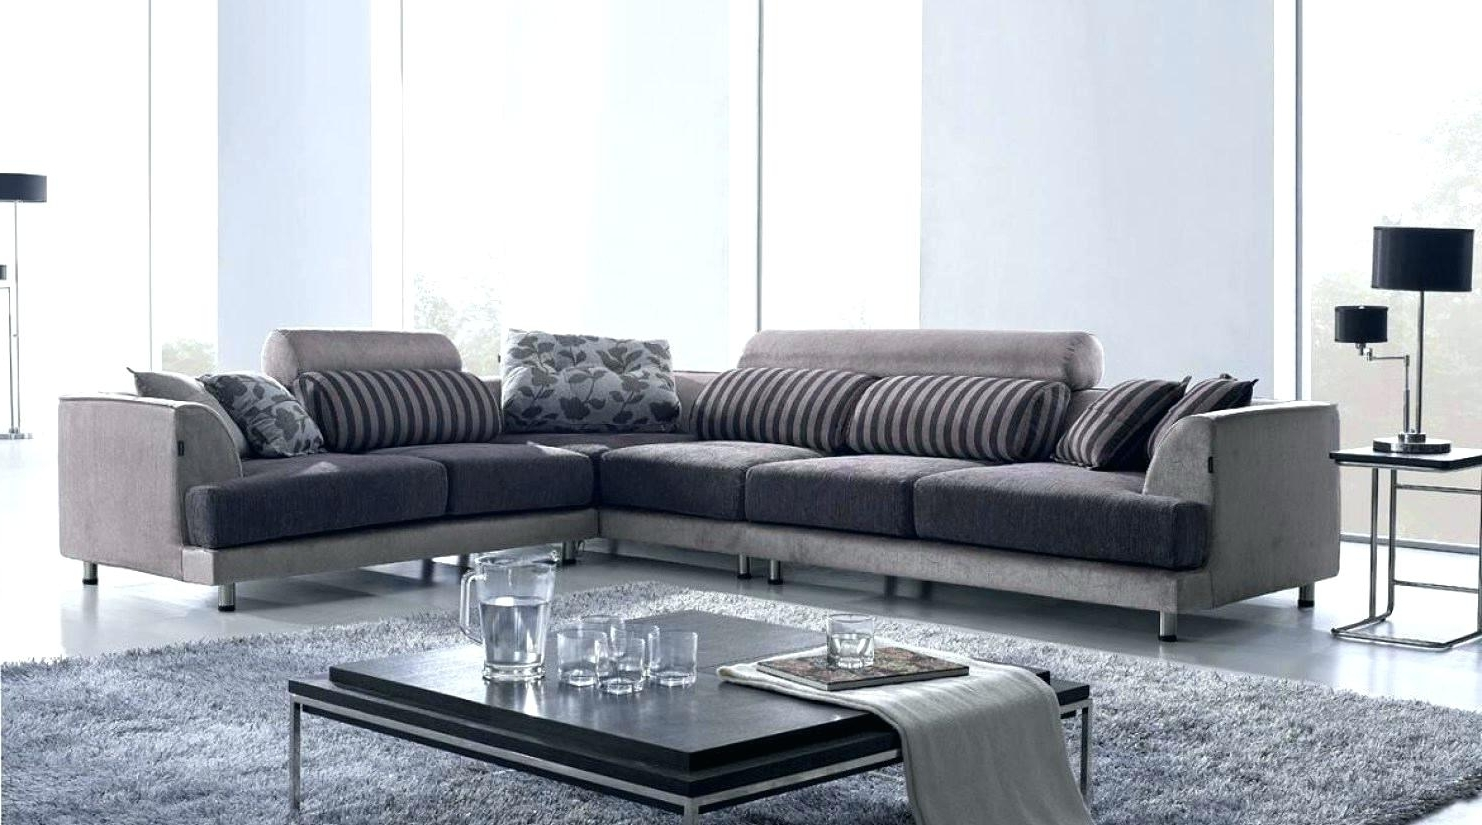 Favorite Office Sofas In Decoration: Office Sofa Bed Gripping Pictures Small Single (View 5 of 15)